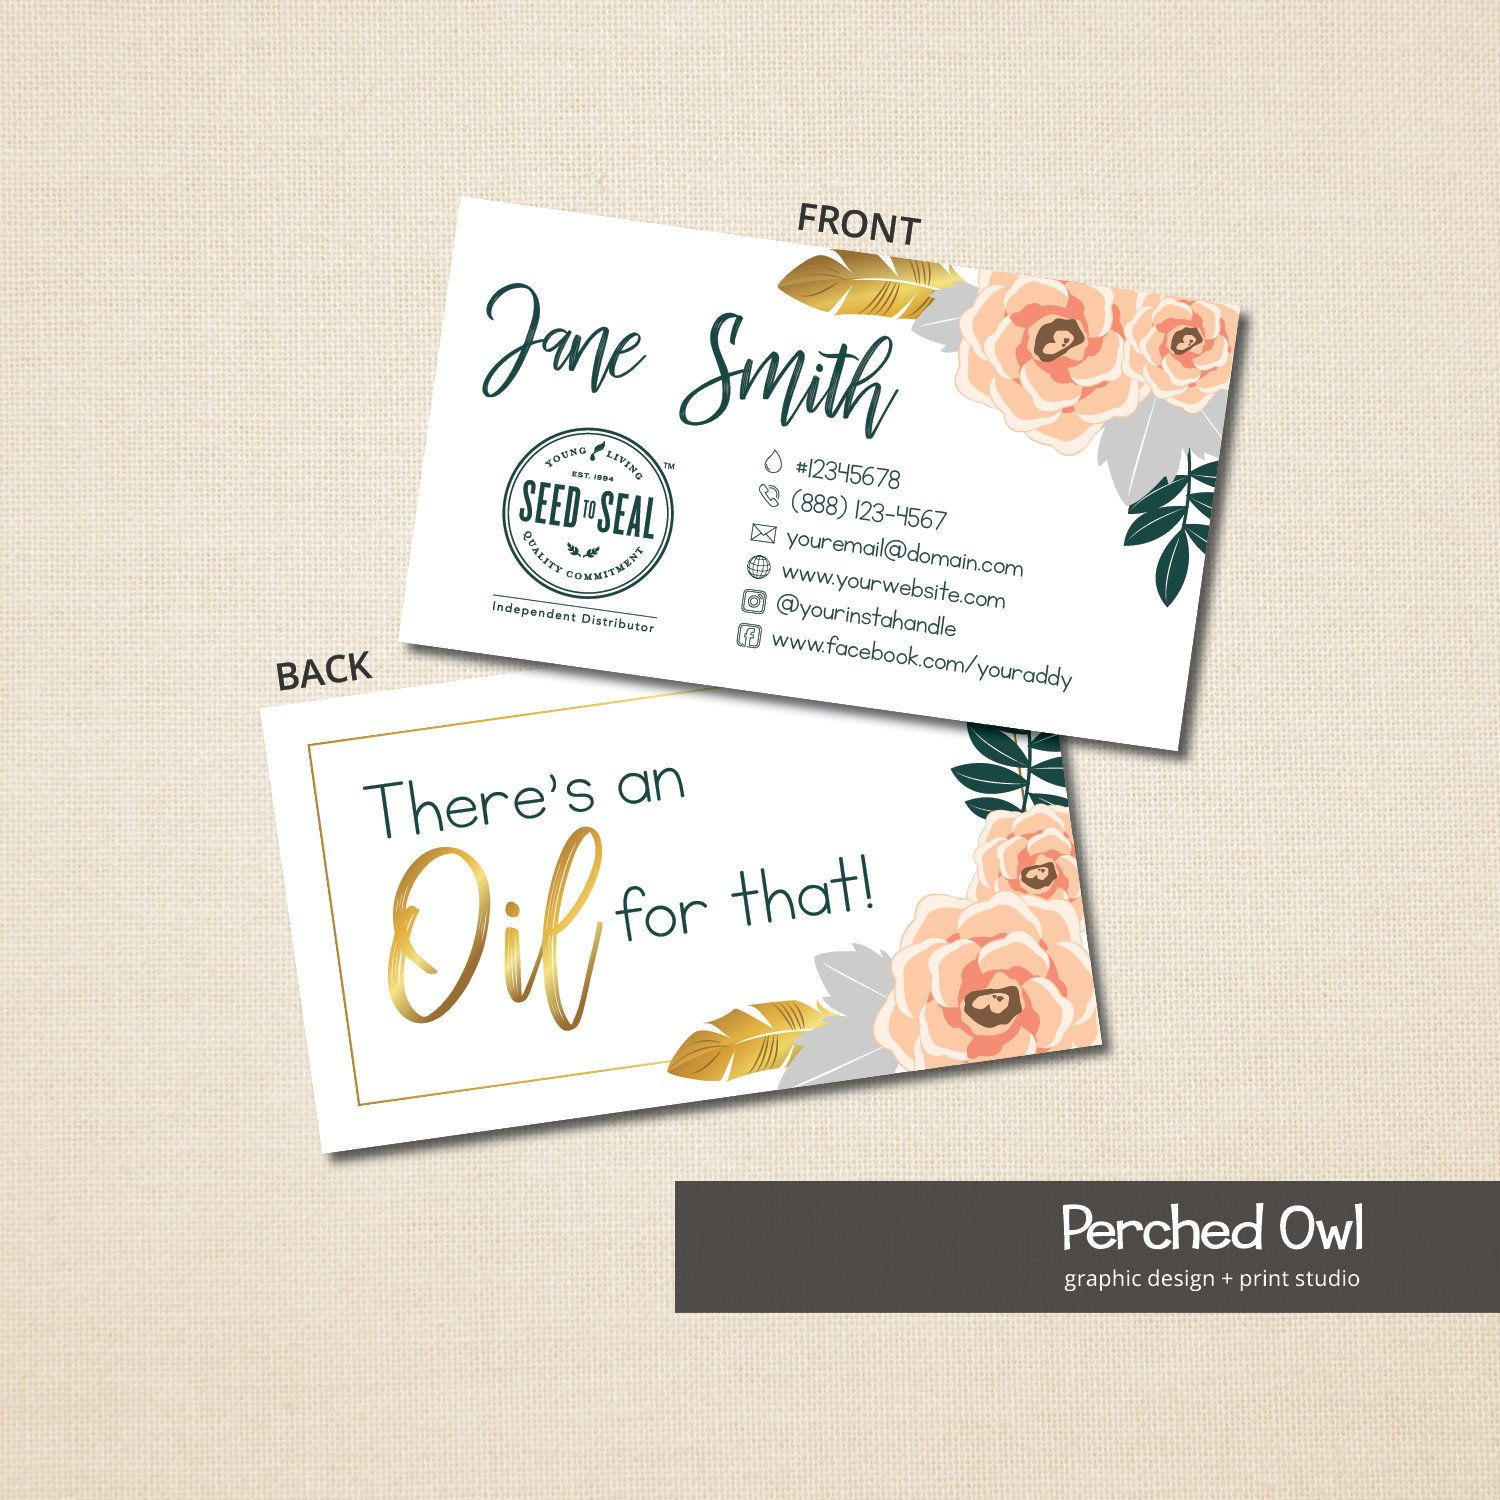 Essential Oils Business Card 2 Sided Card There S An Oil For